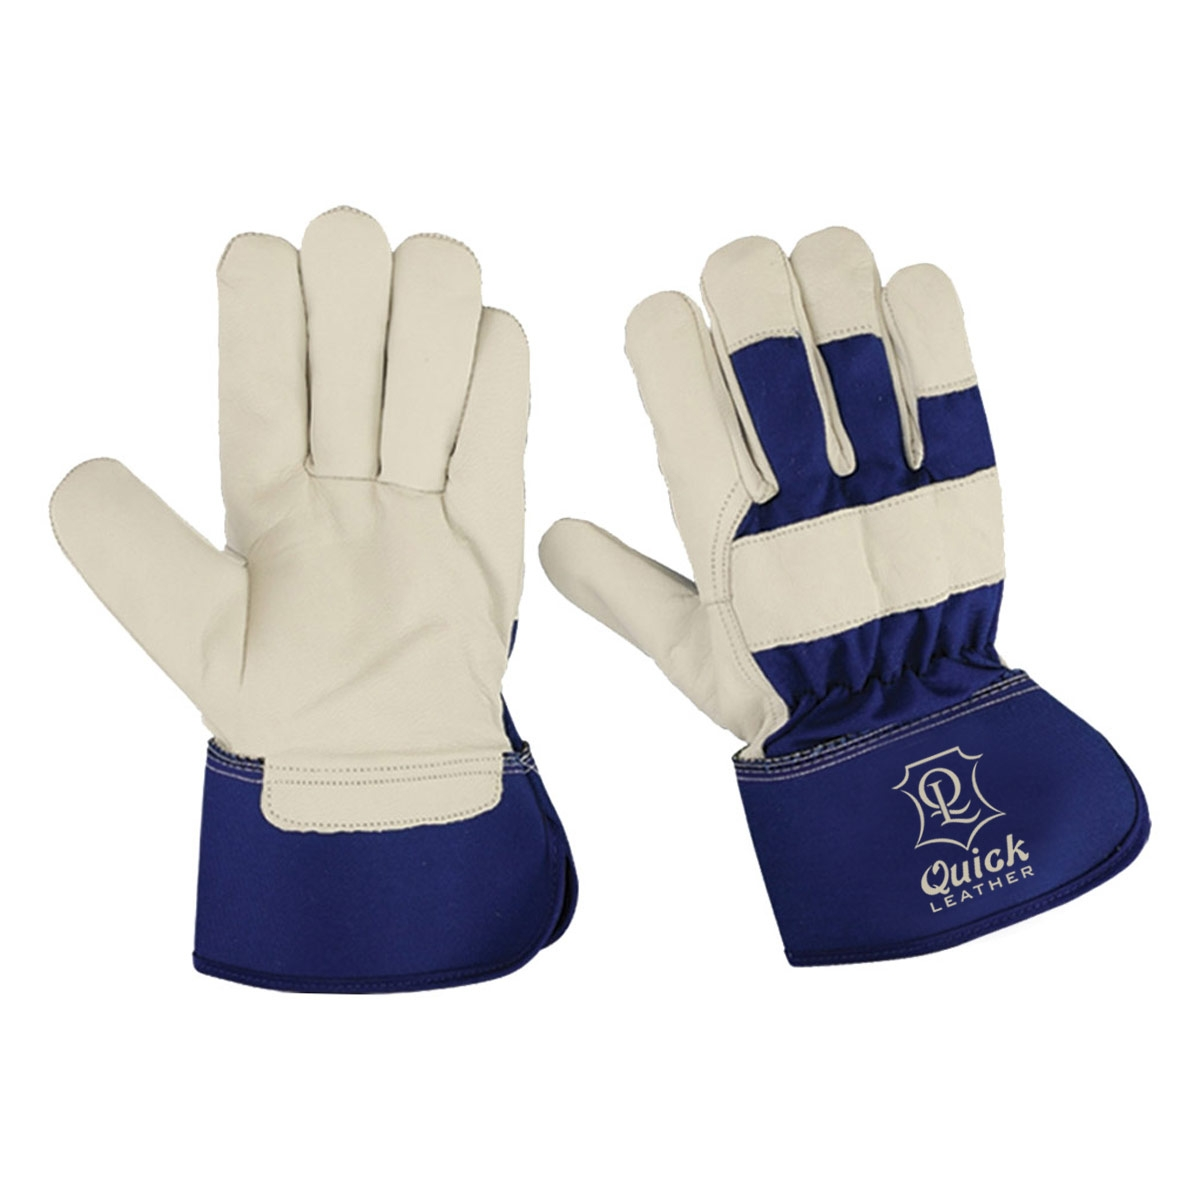 Working Gloves Flexible And Breathable Gloves QL-402